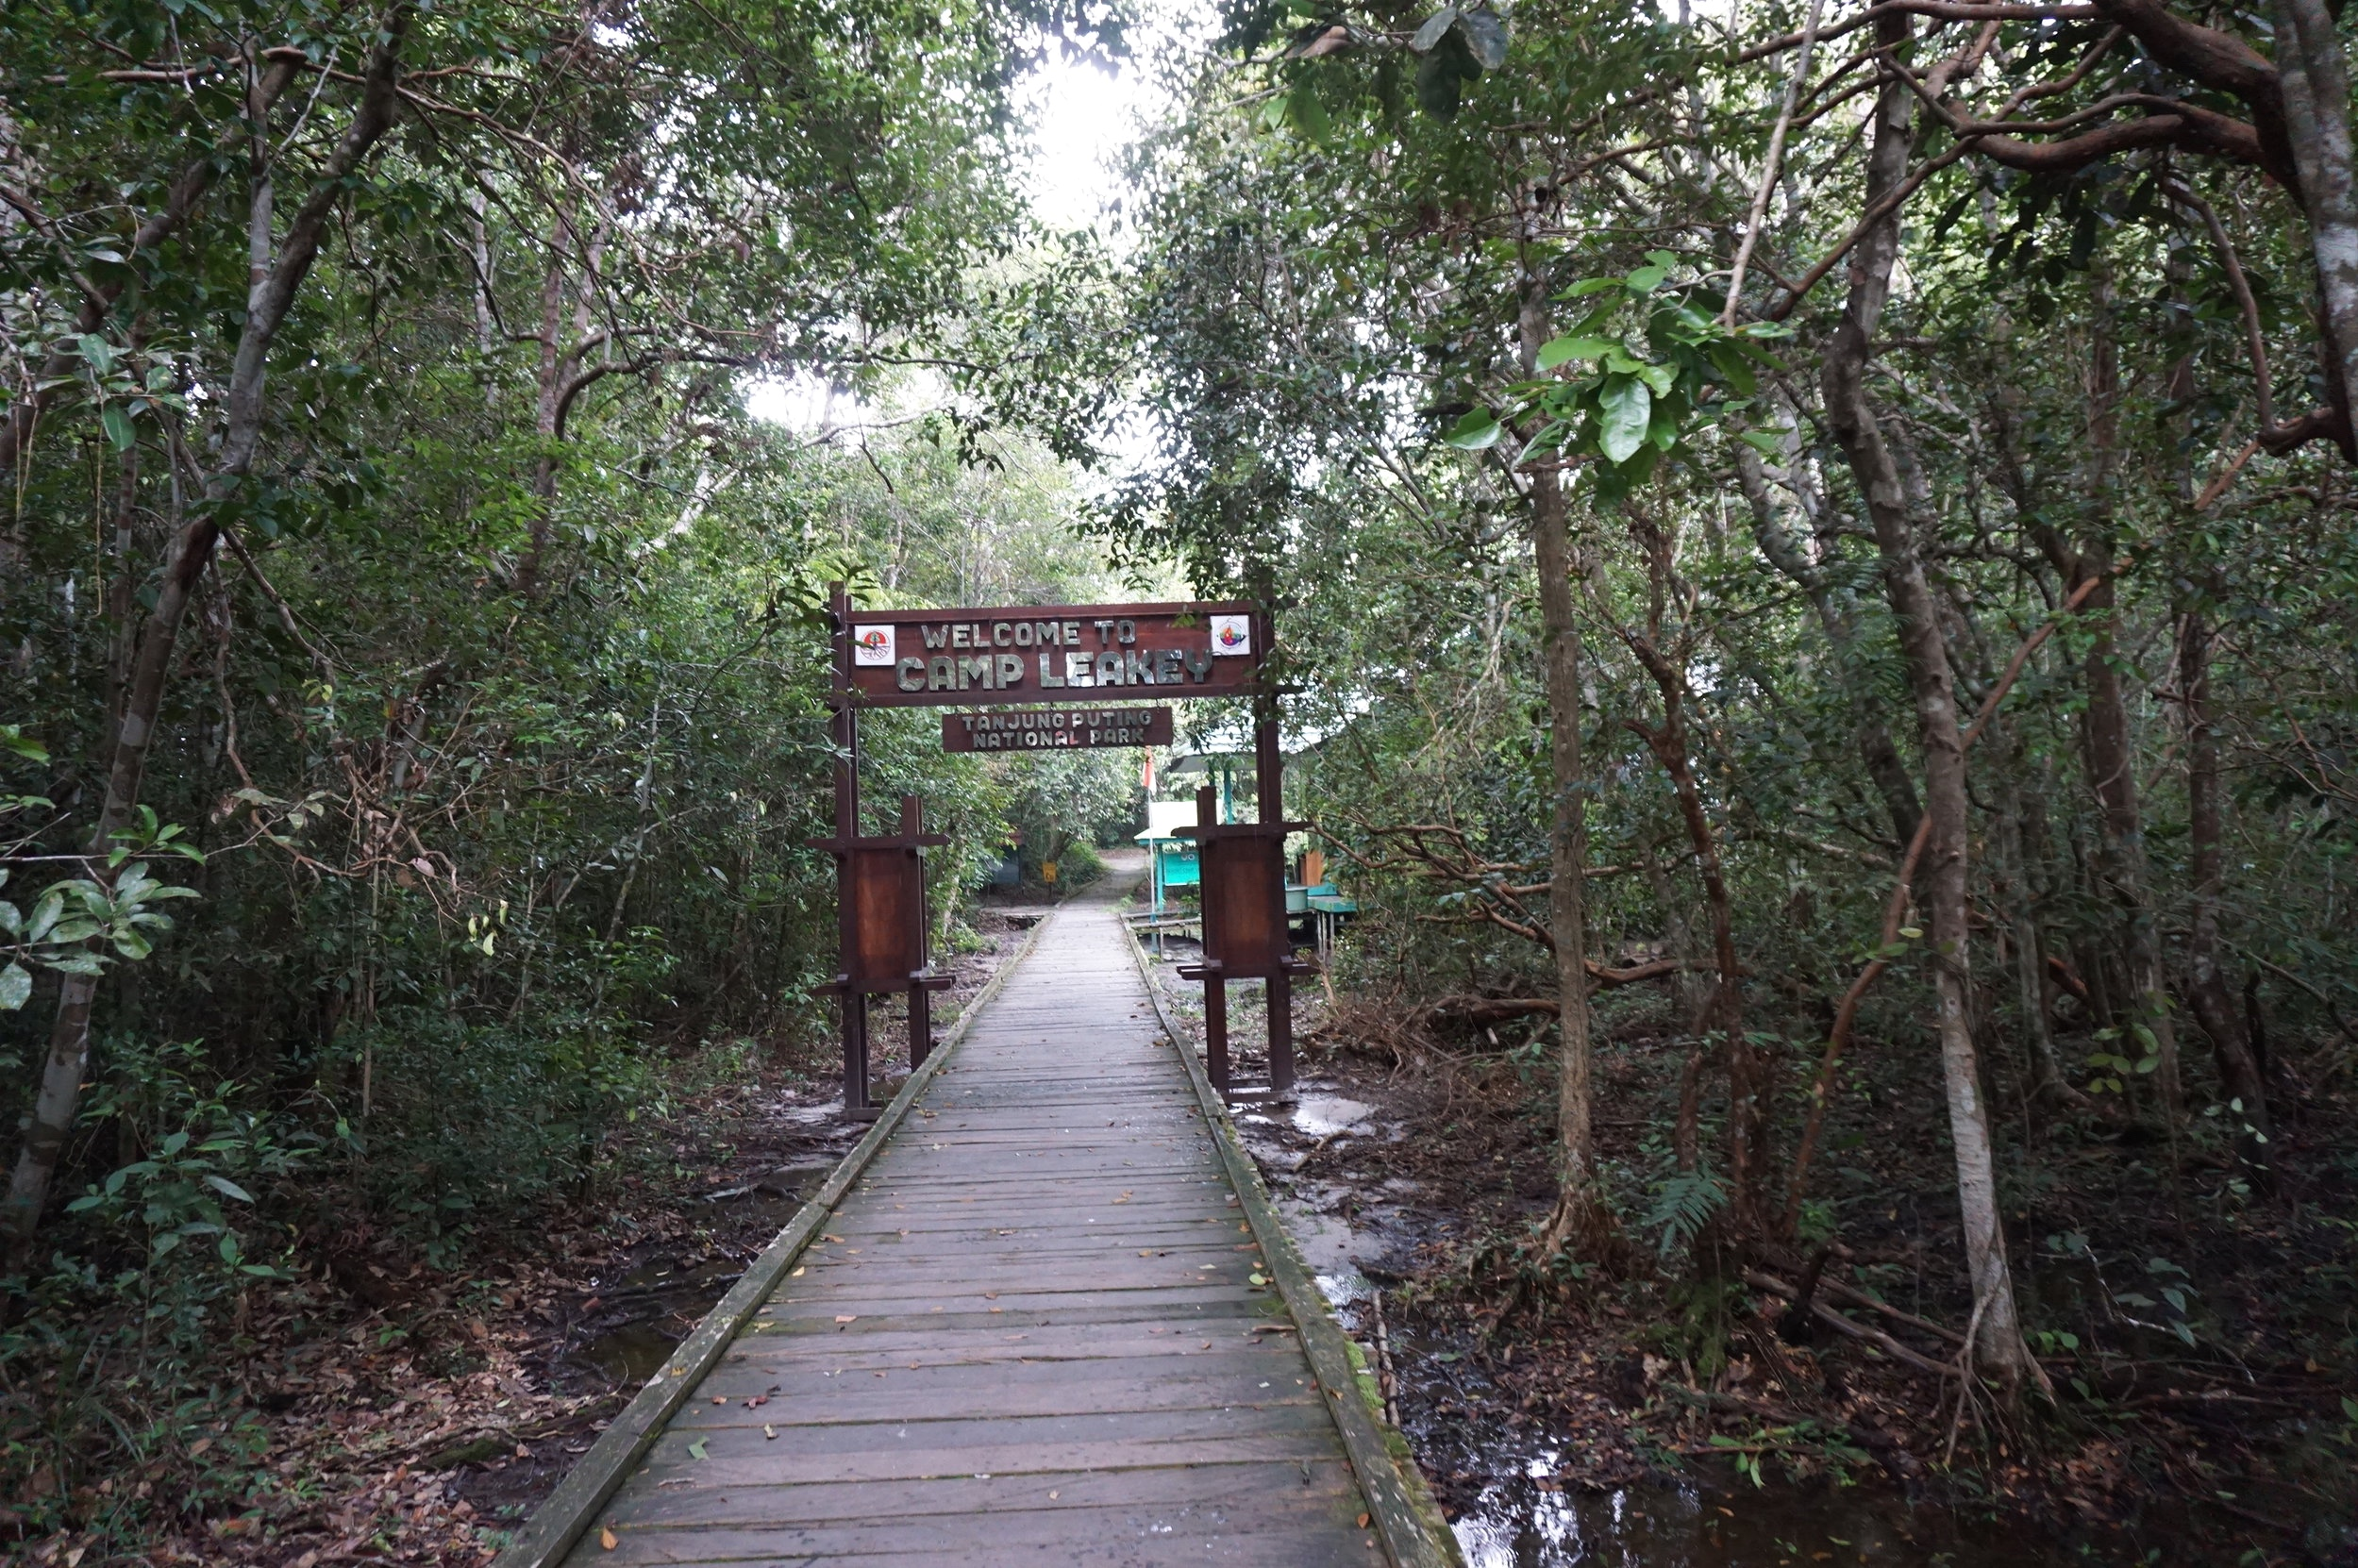 Camp Leakey entrance gate